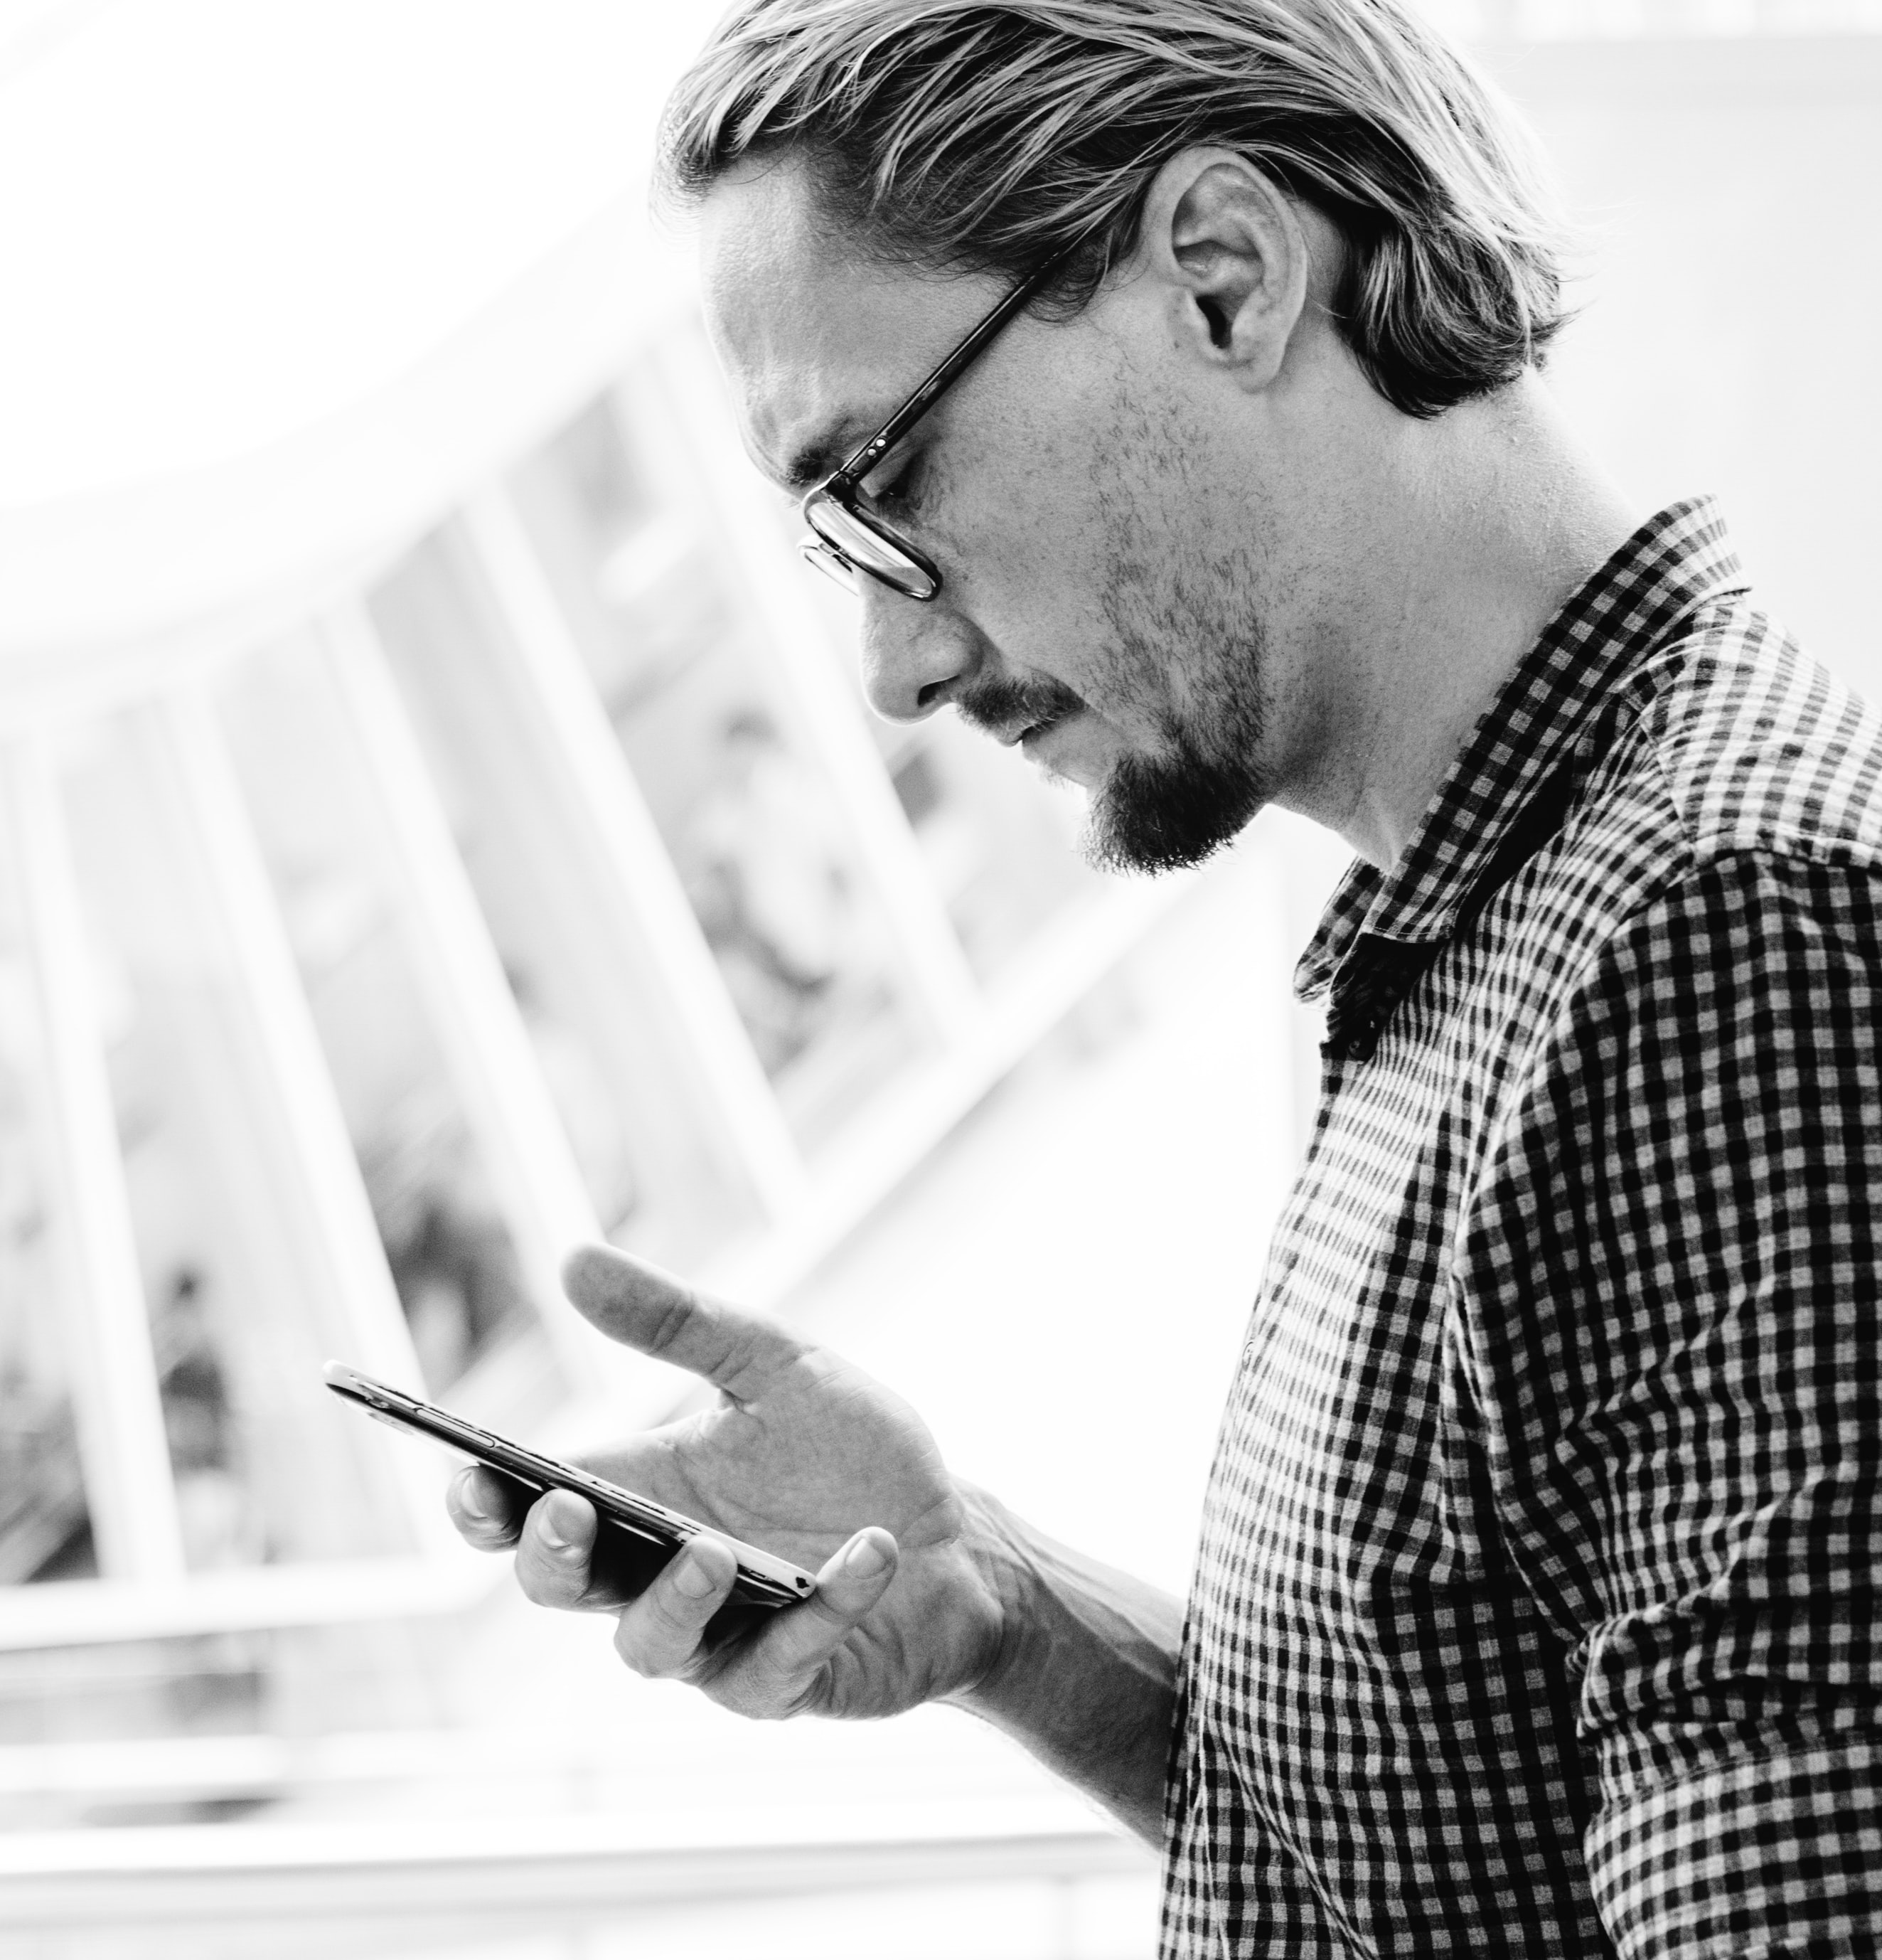 grayscale photo of man holding smartphone